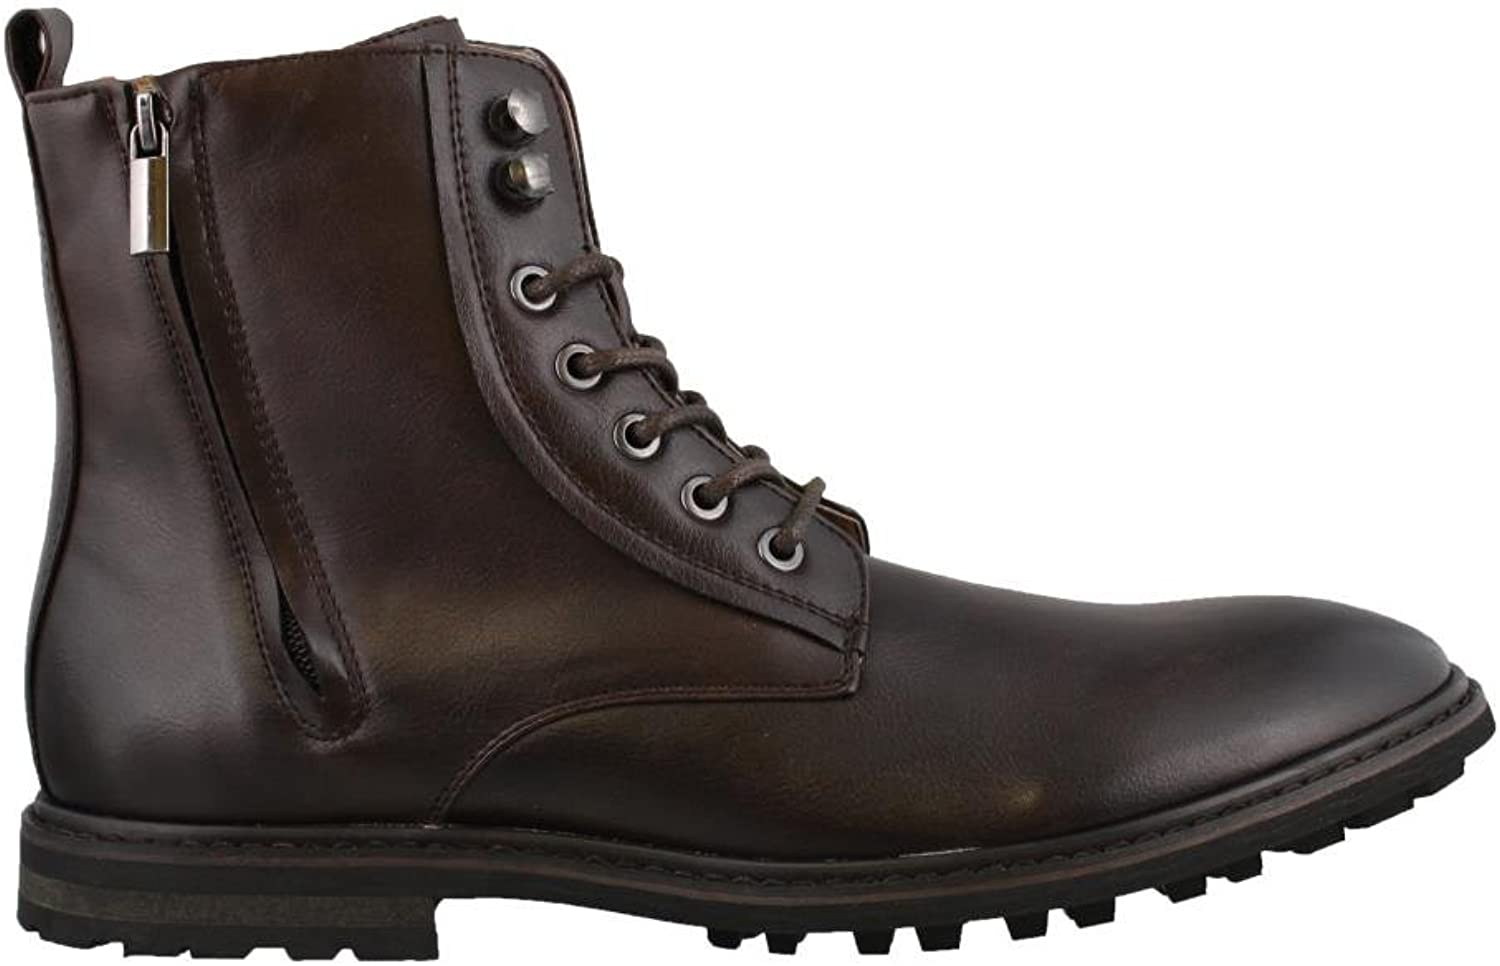 RW by Robert Wayne Men's Thatcher Fashion Boot